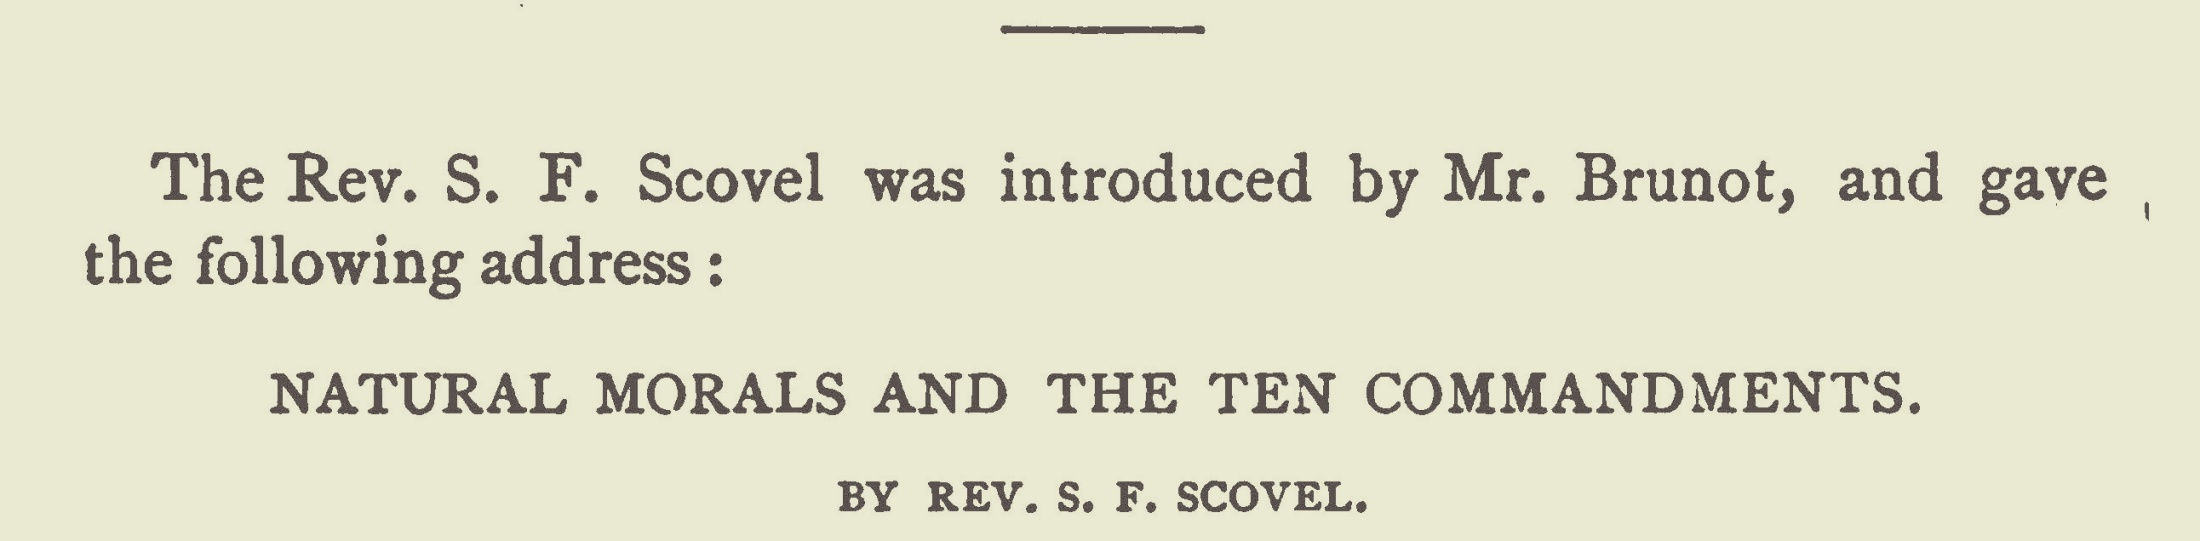 Scovel, Sylvester Fithian, Natural Morals and the Ten Commandments Title Page.jpg